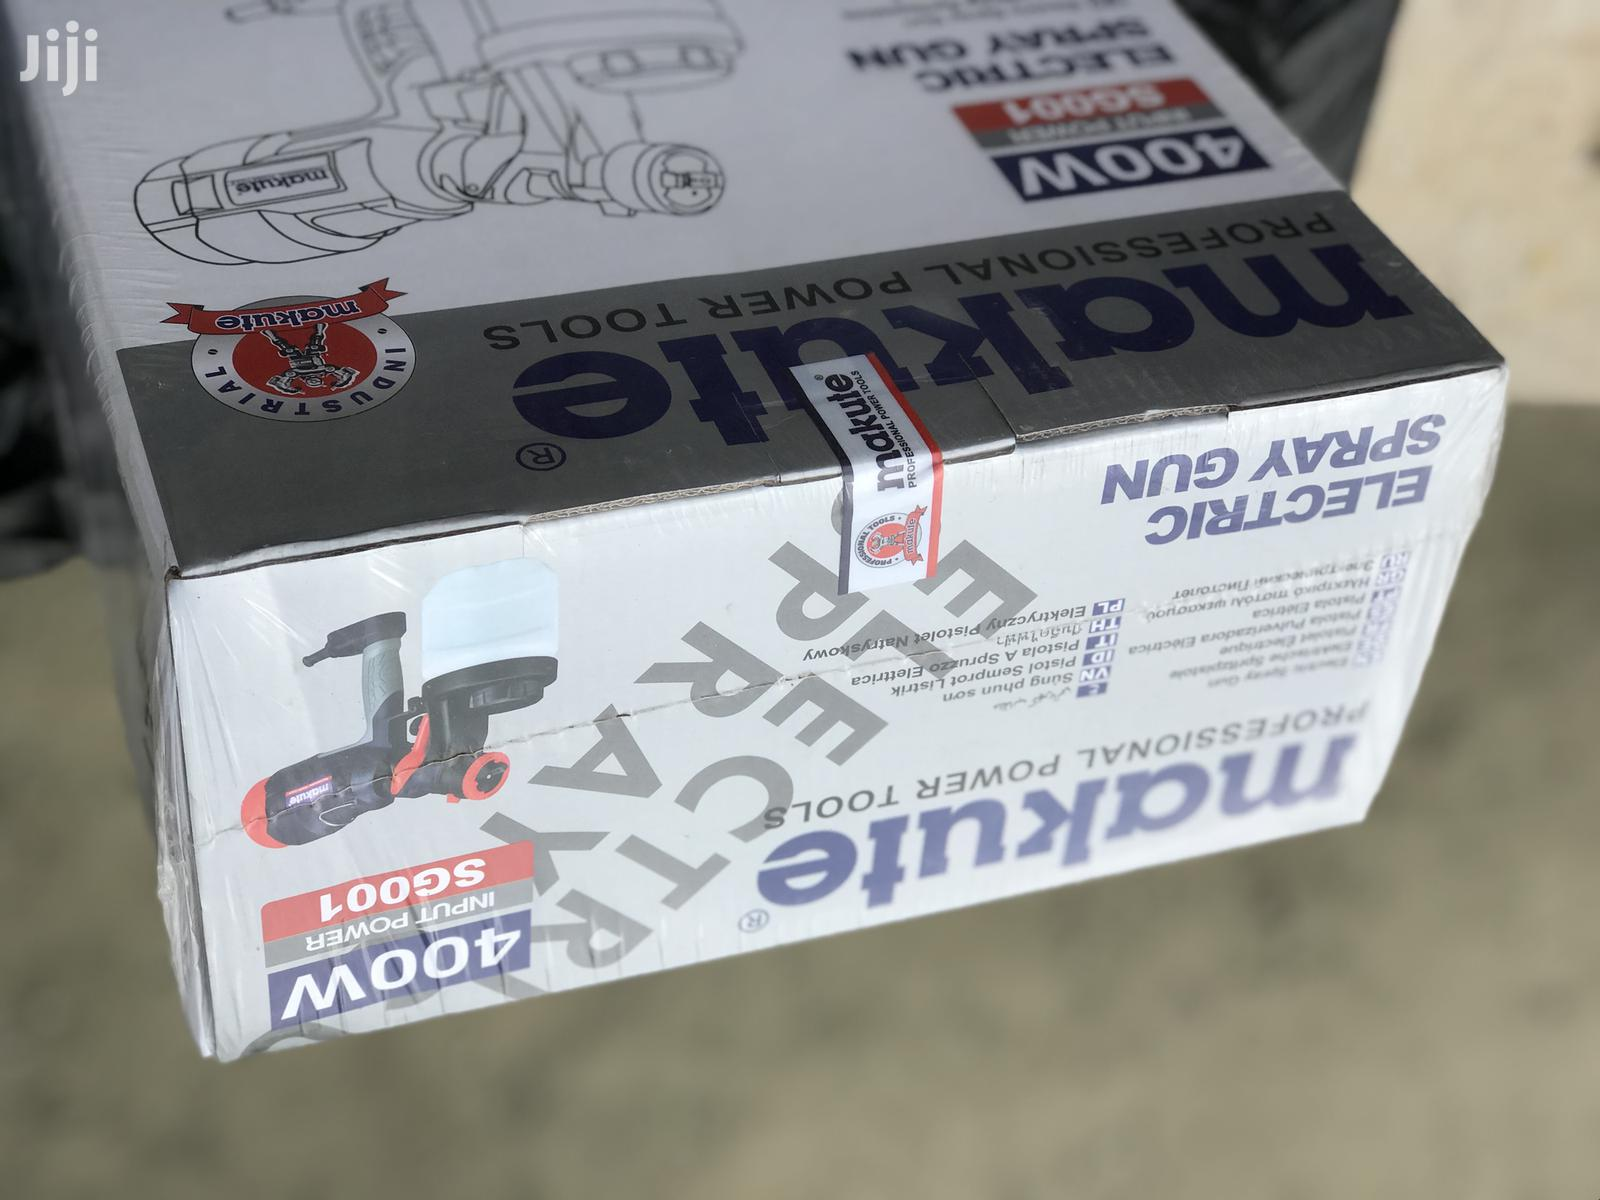 Makute Electronic Spray Machine | Electrical Tools for sale in Abelemkpe, Greater Accra, Ghana